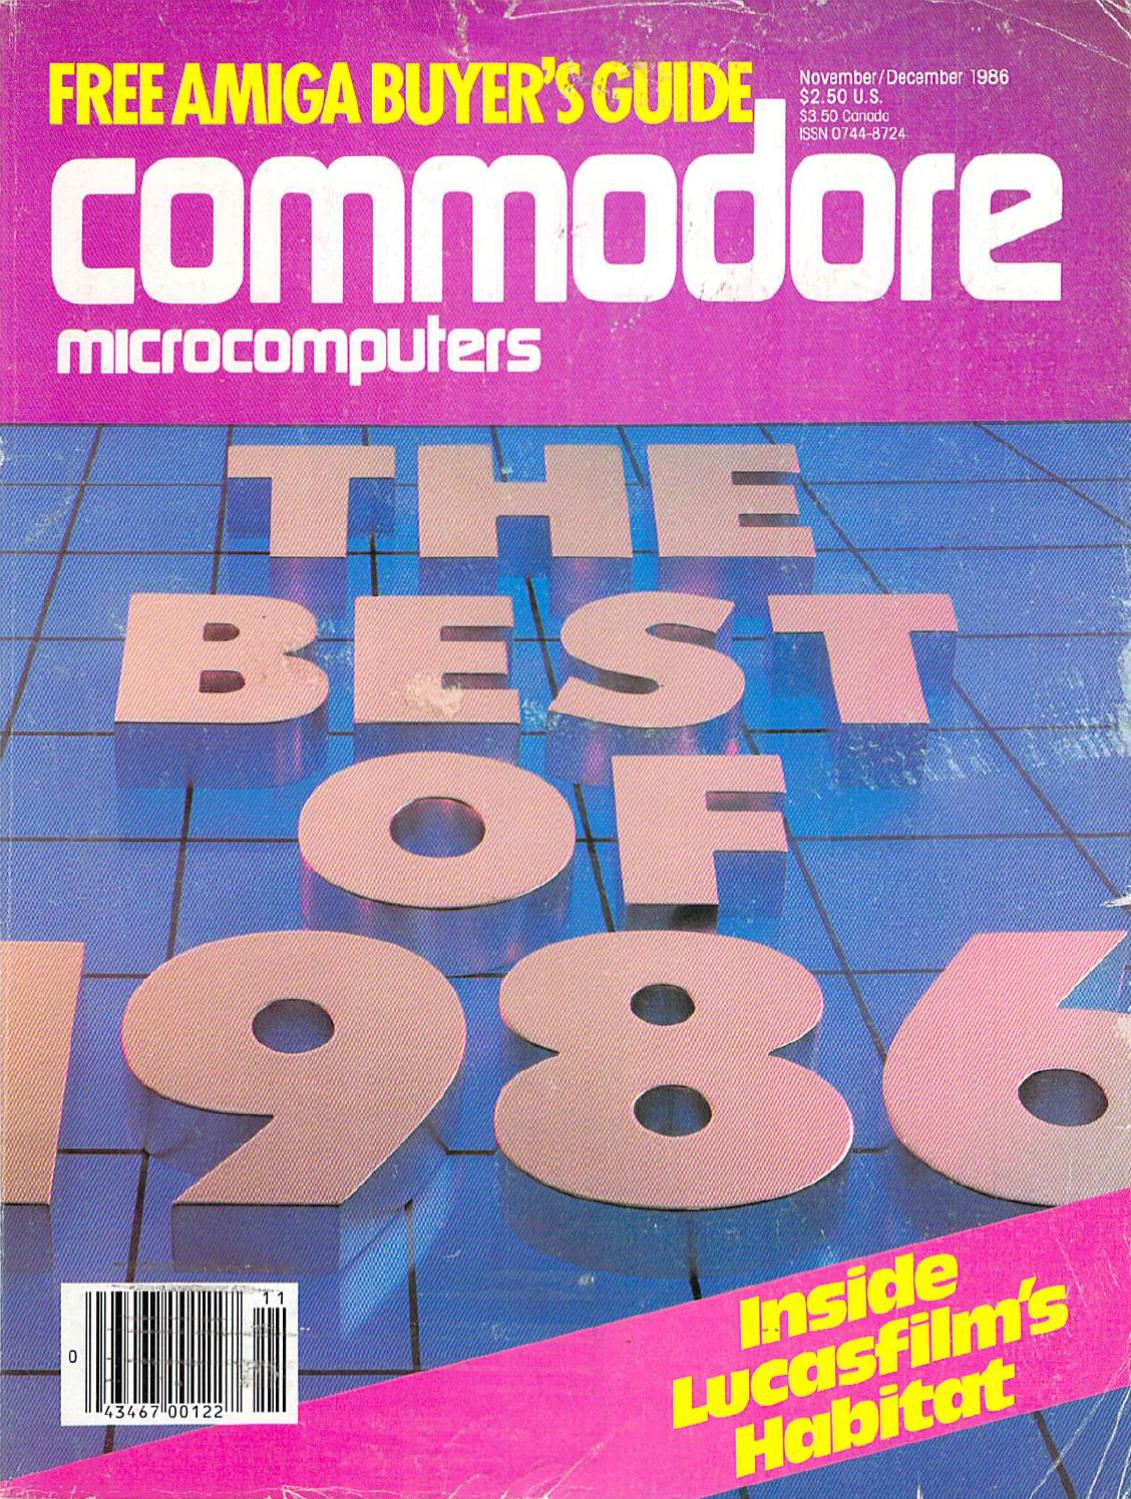 Commodore_MicroComputer_Issue_44_1986_Nov_Dec by Zetmoon - issuu on